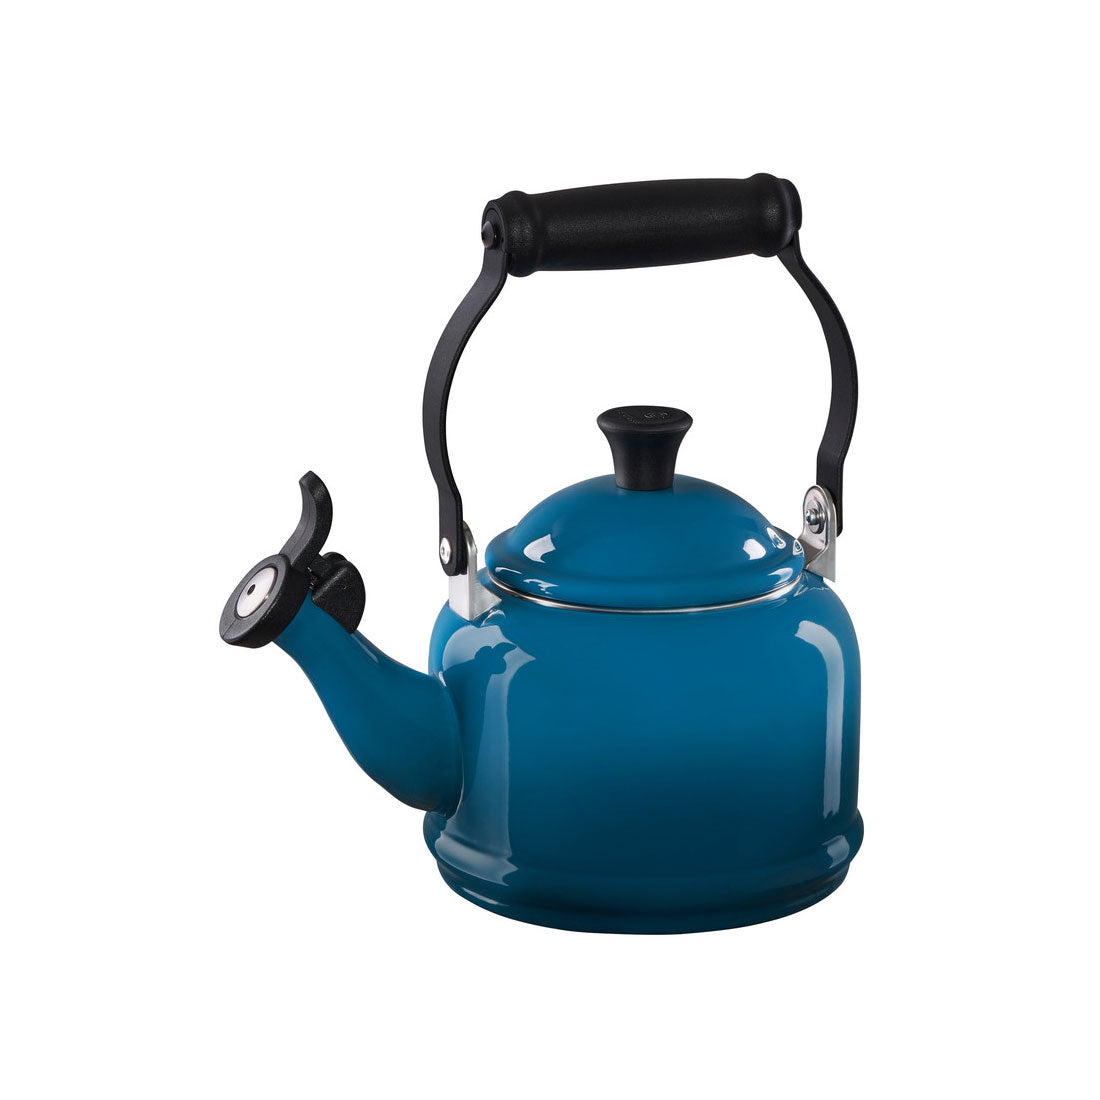 Le Creuset 1.25 Quart Demi Tea Kettle - Deep Teal